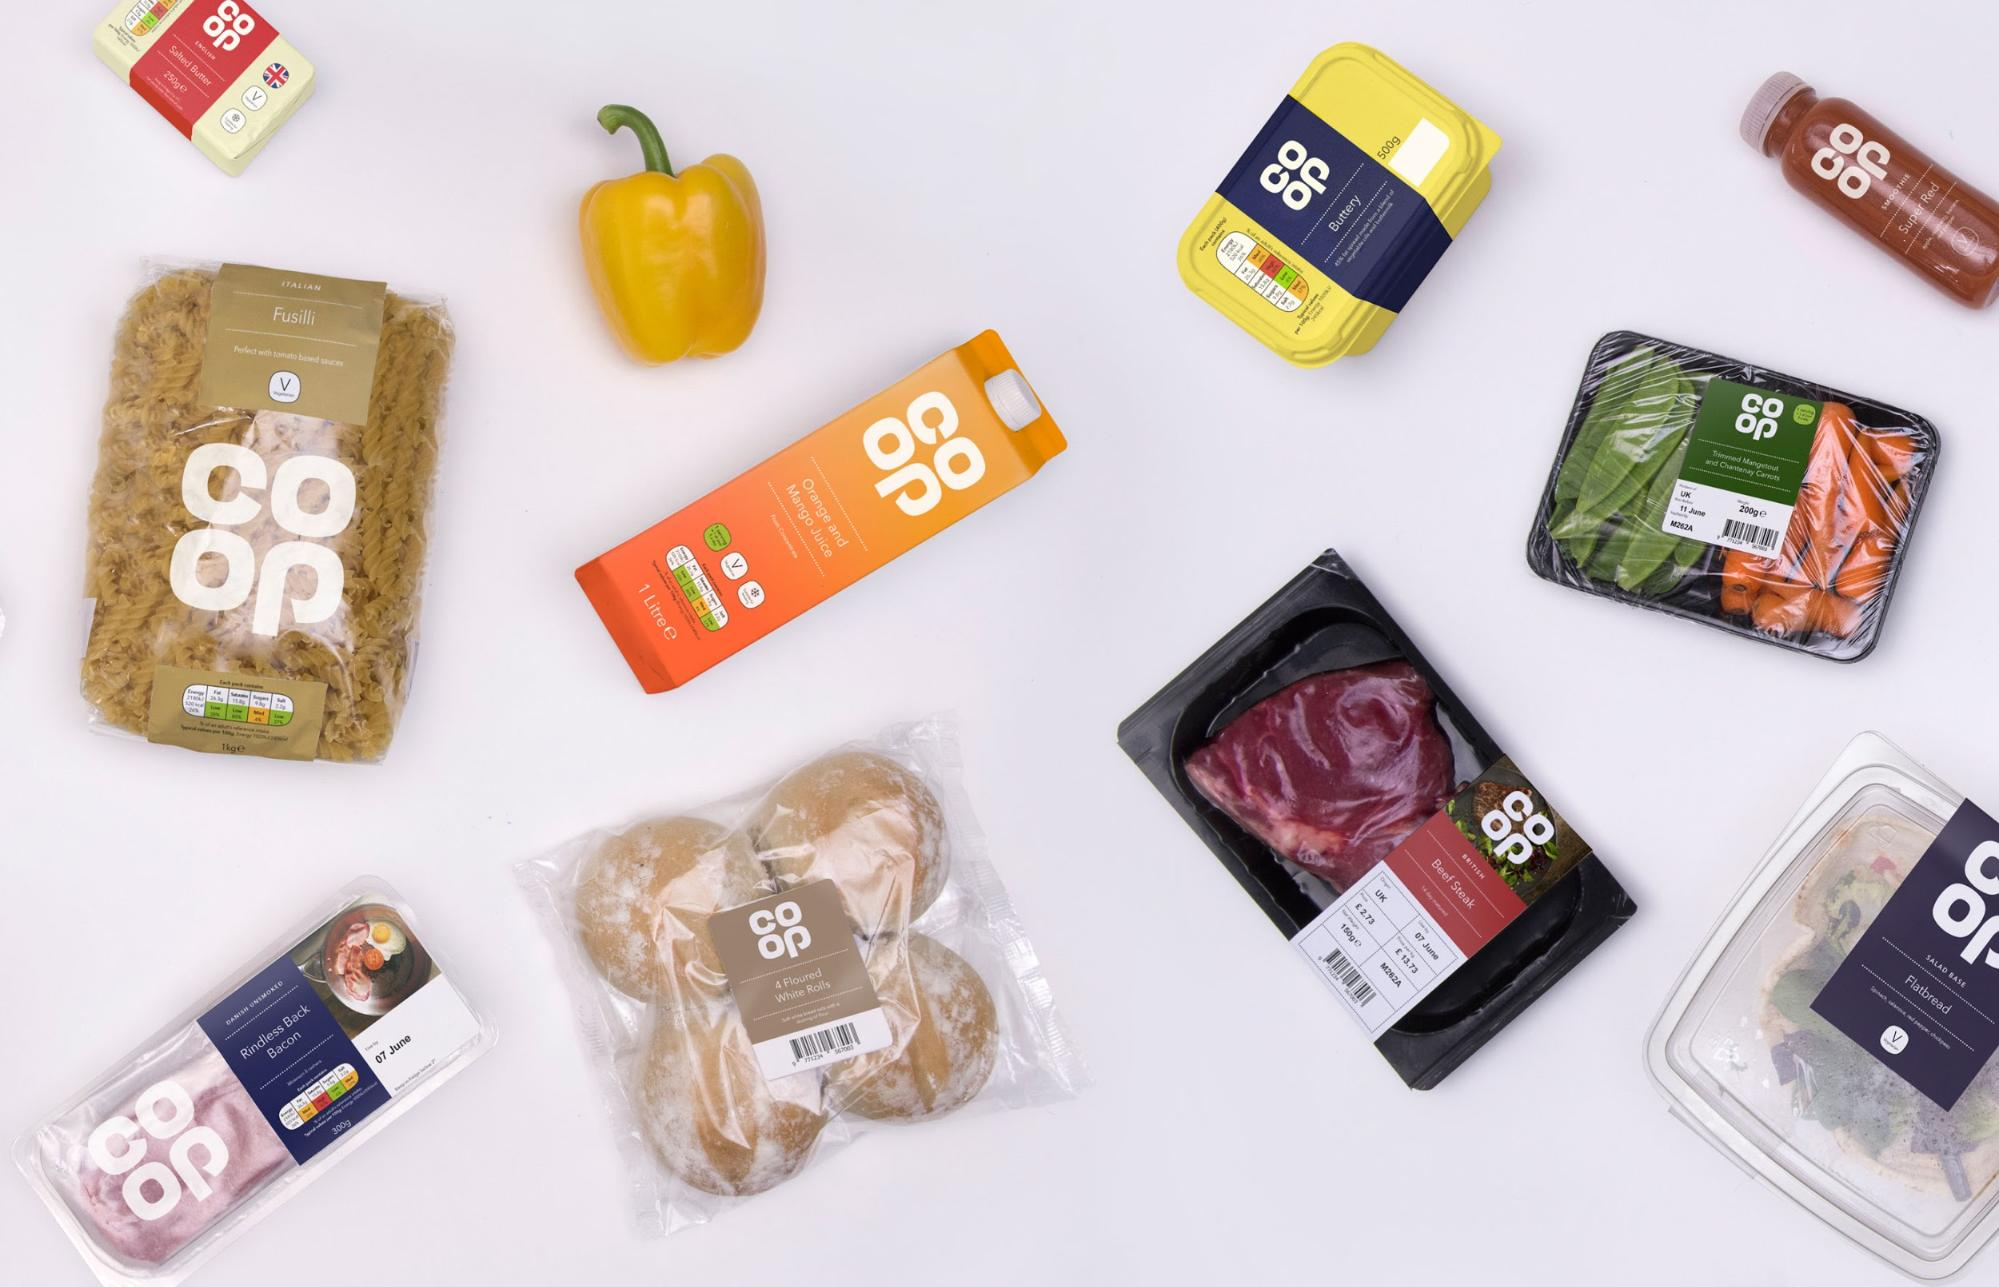 Co Op logo designs on products